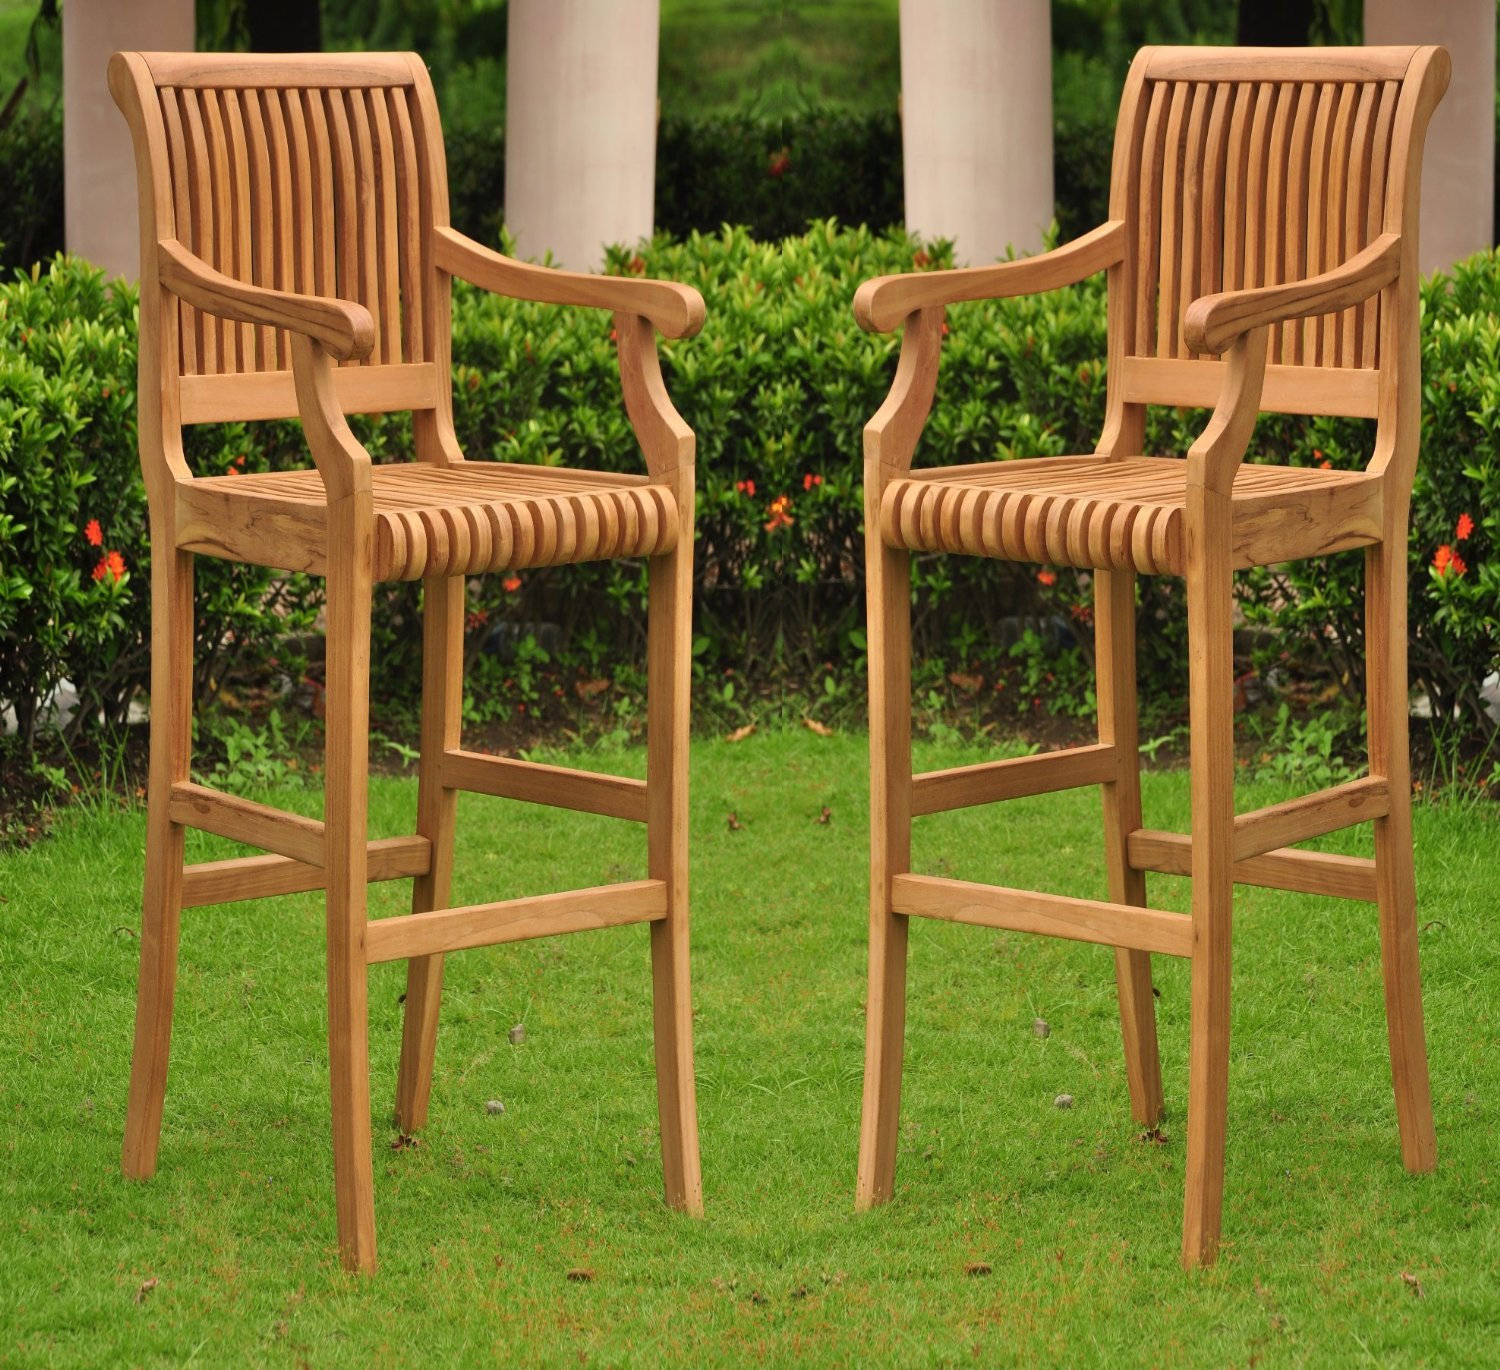 Exceptional New Grade A Teak Wood Outdoor Patio Bar Arm Chair Only U2013 Cushions Sold  Separately